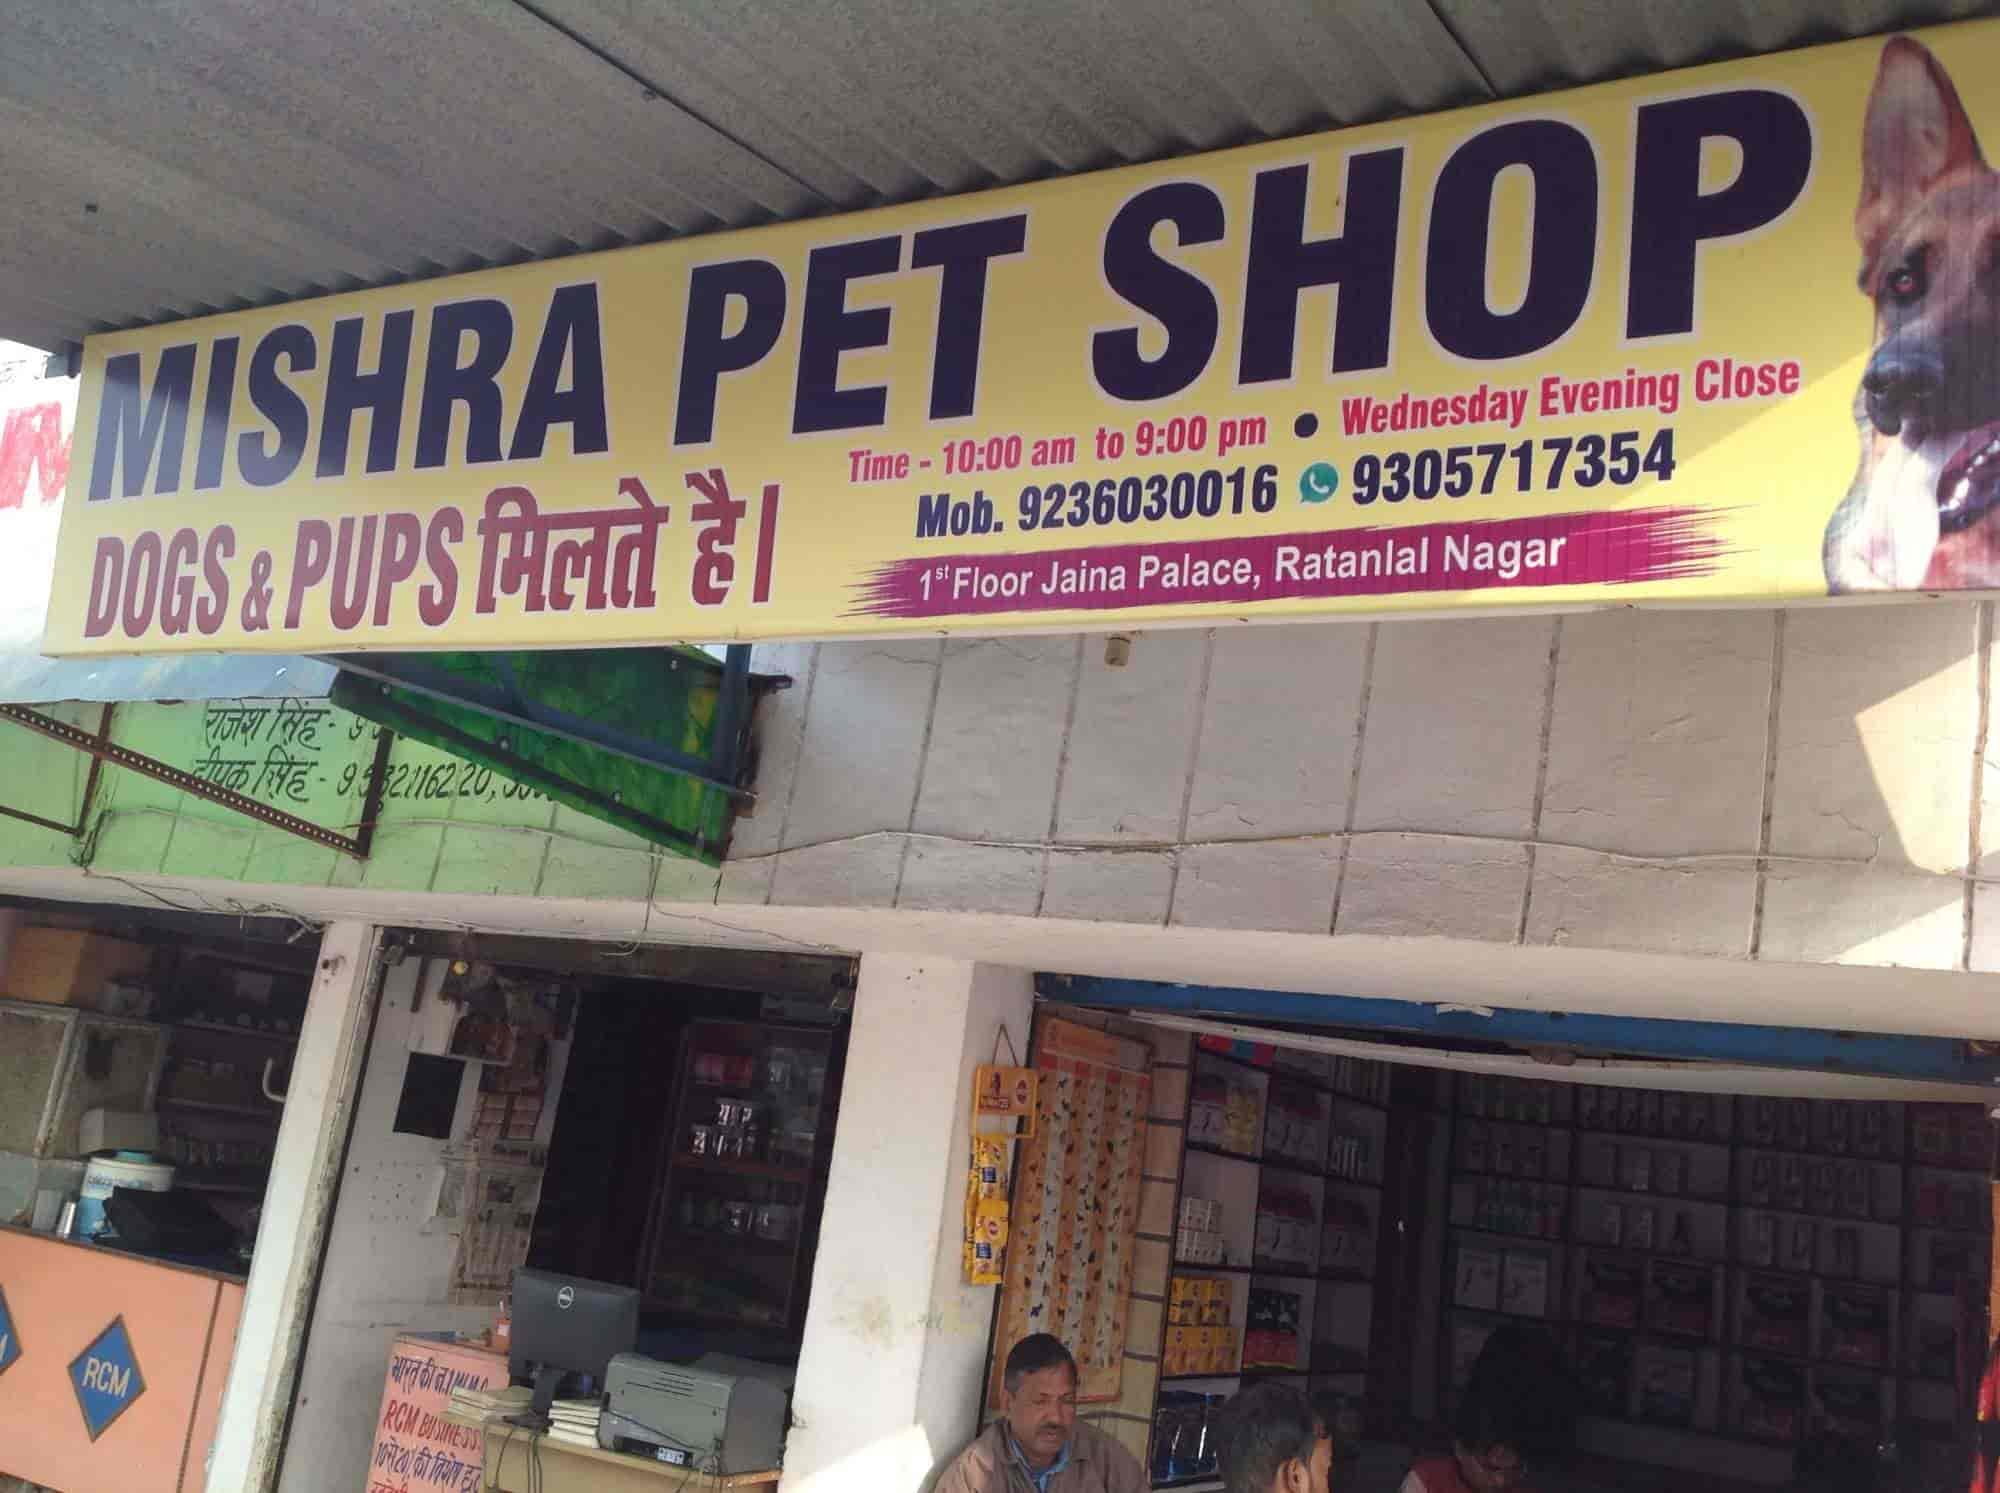 Mishra Pet Shop, Kalyanpur - Pet Shops For Dog in Kanpur